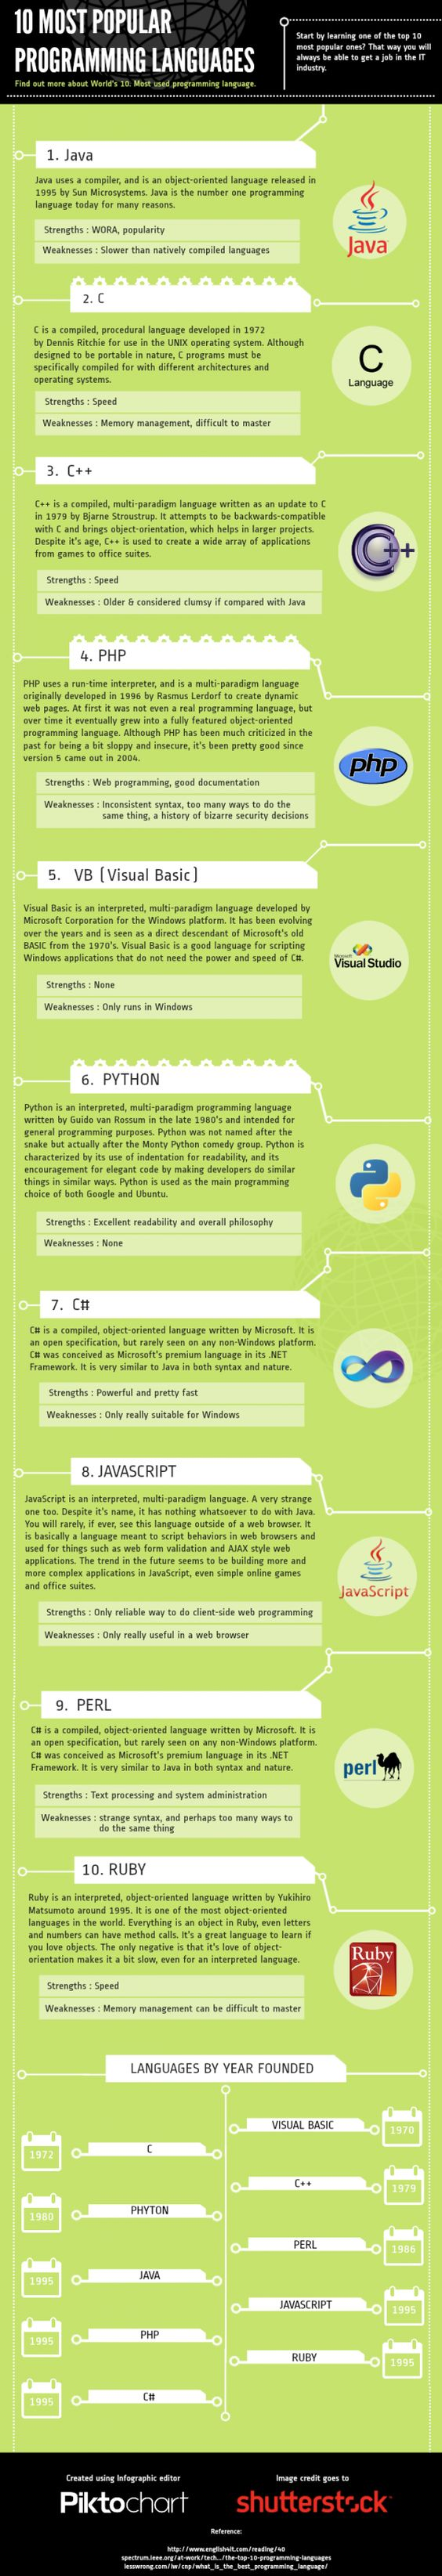 Top 10 Programming Languages Created In Free